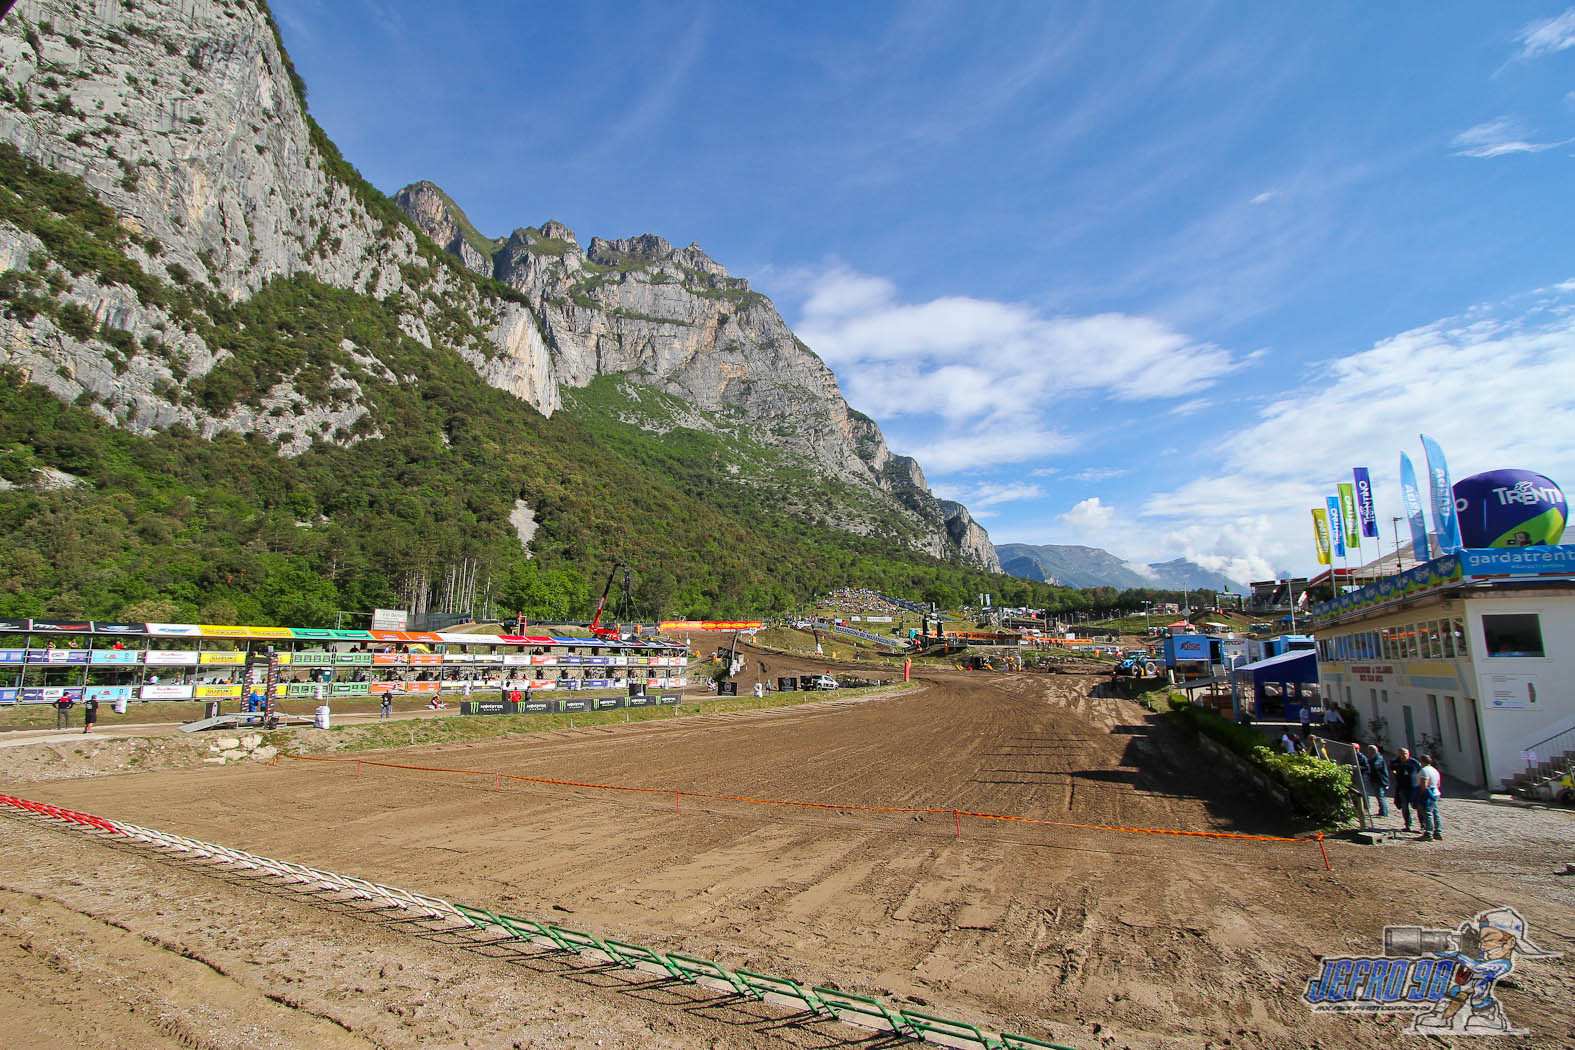 Track view - Photo Gallery: MXGP of Trentino, Italy - Motocross Pictures - Vital MX